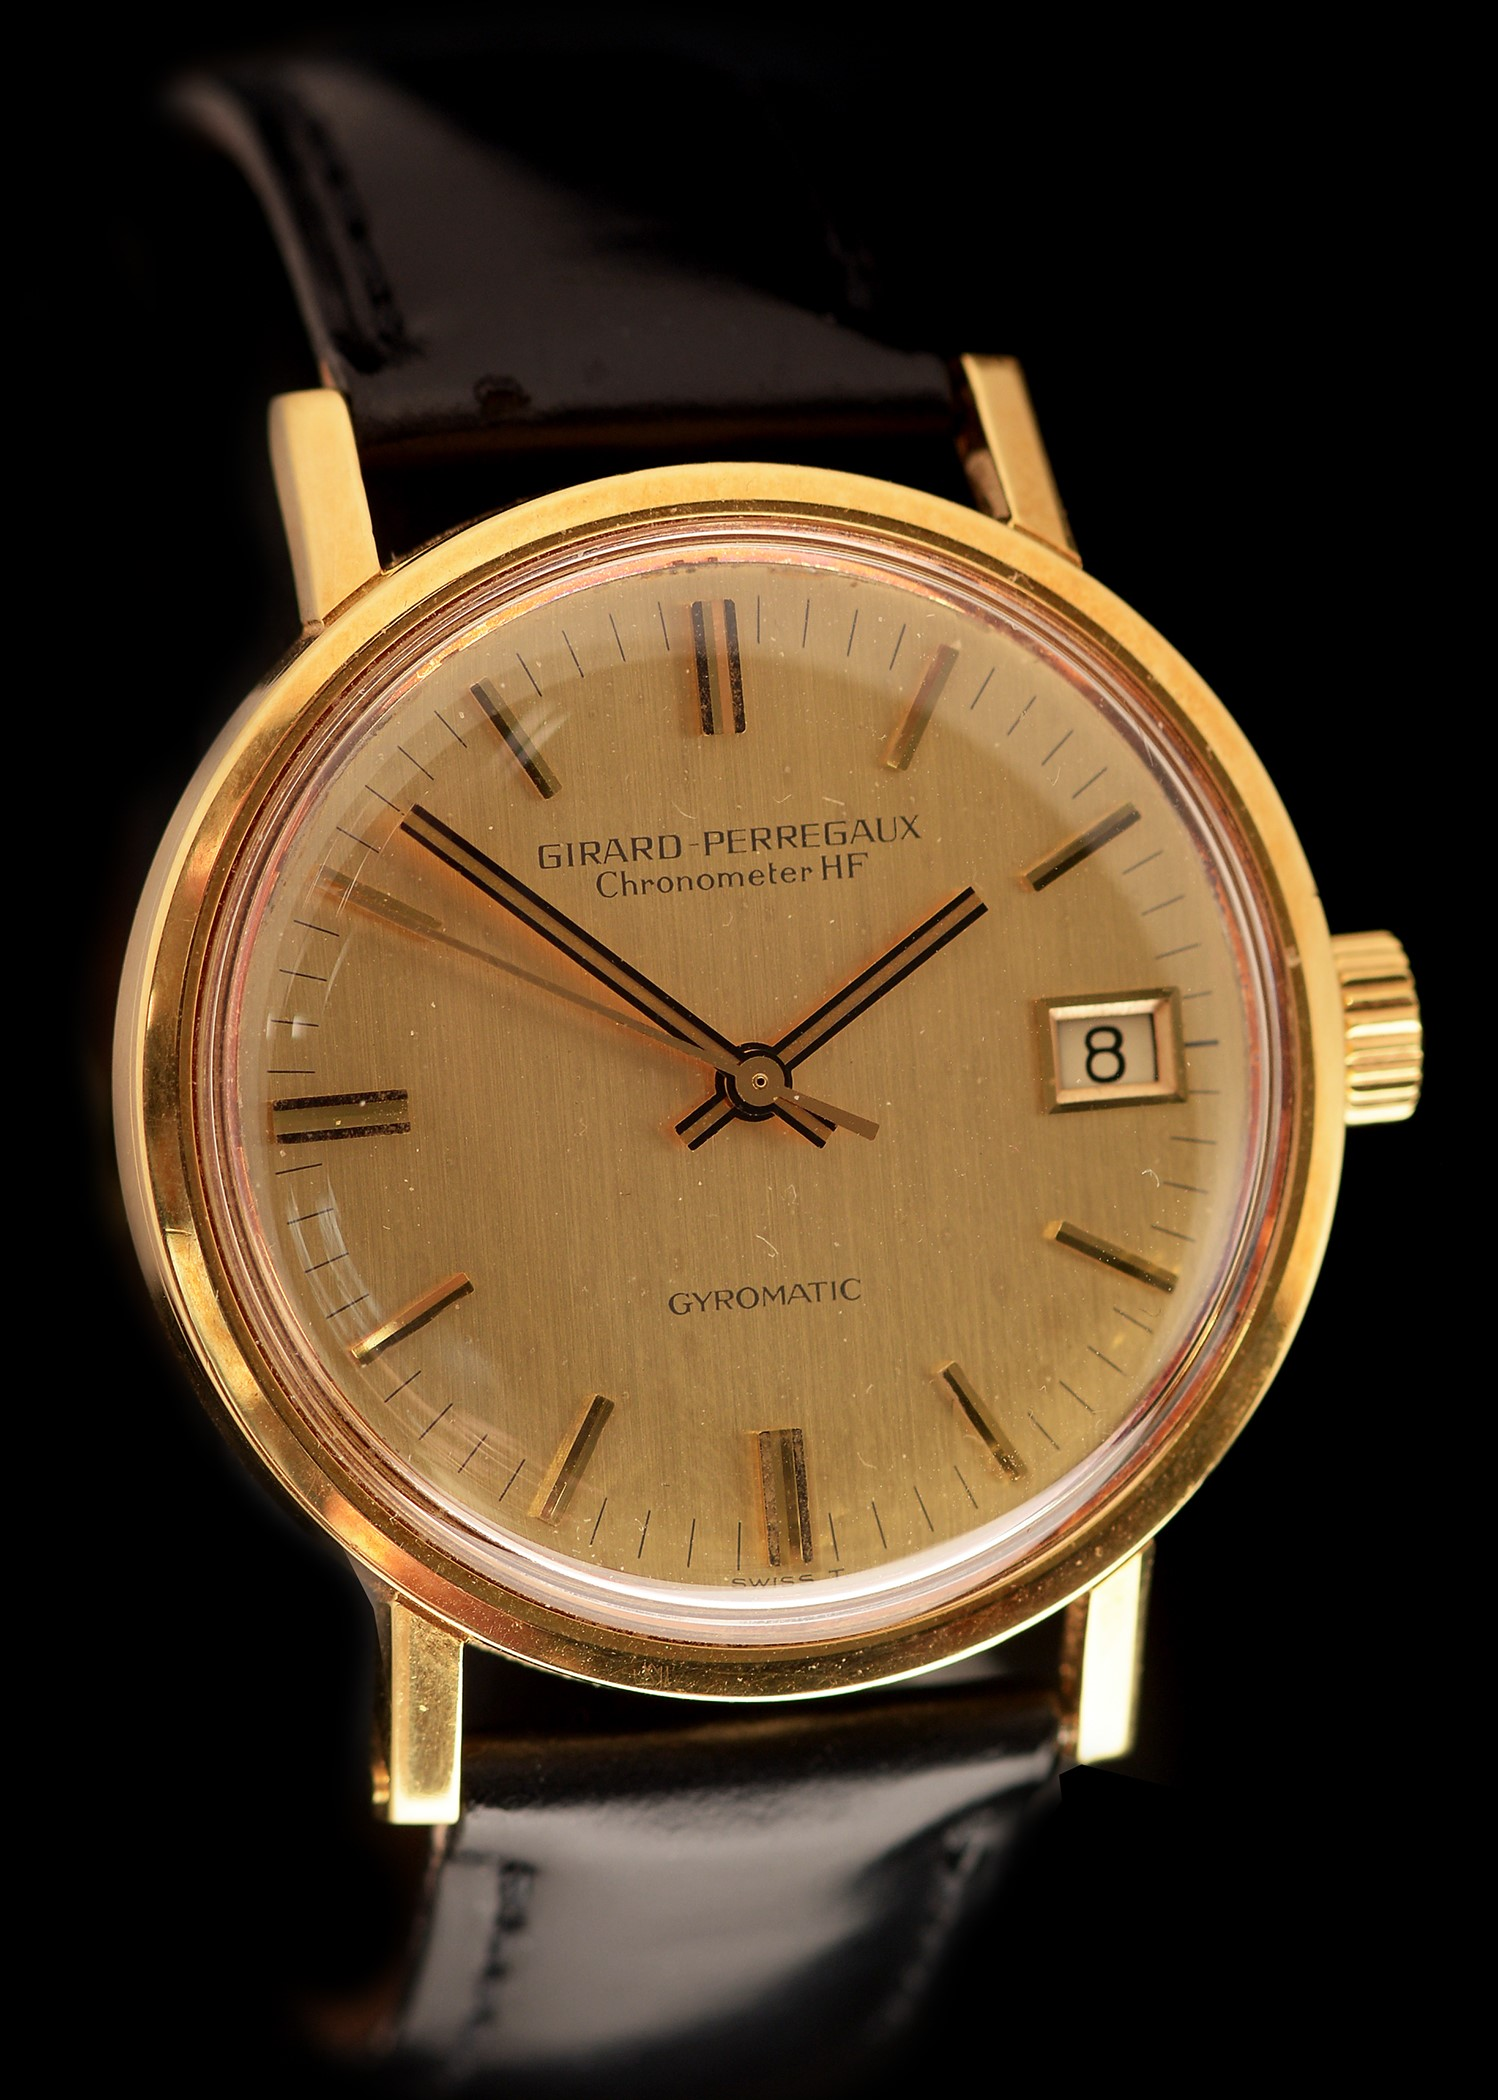 Lot 29 - 18k gold Girard Perregaux Gyromatic Chronometer HF